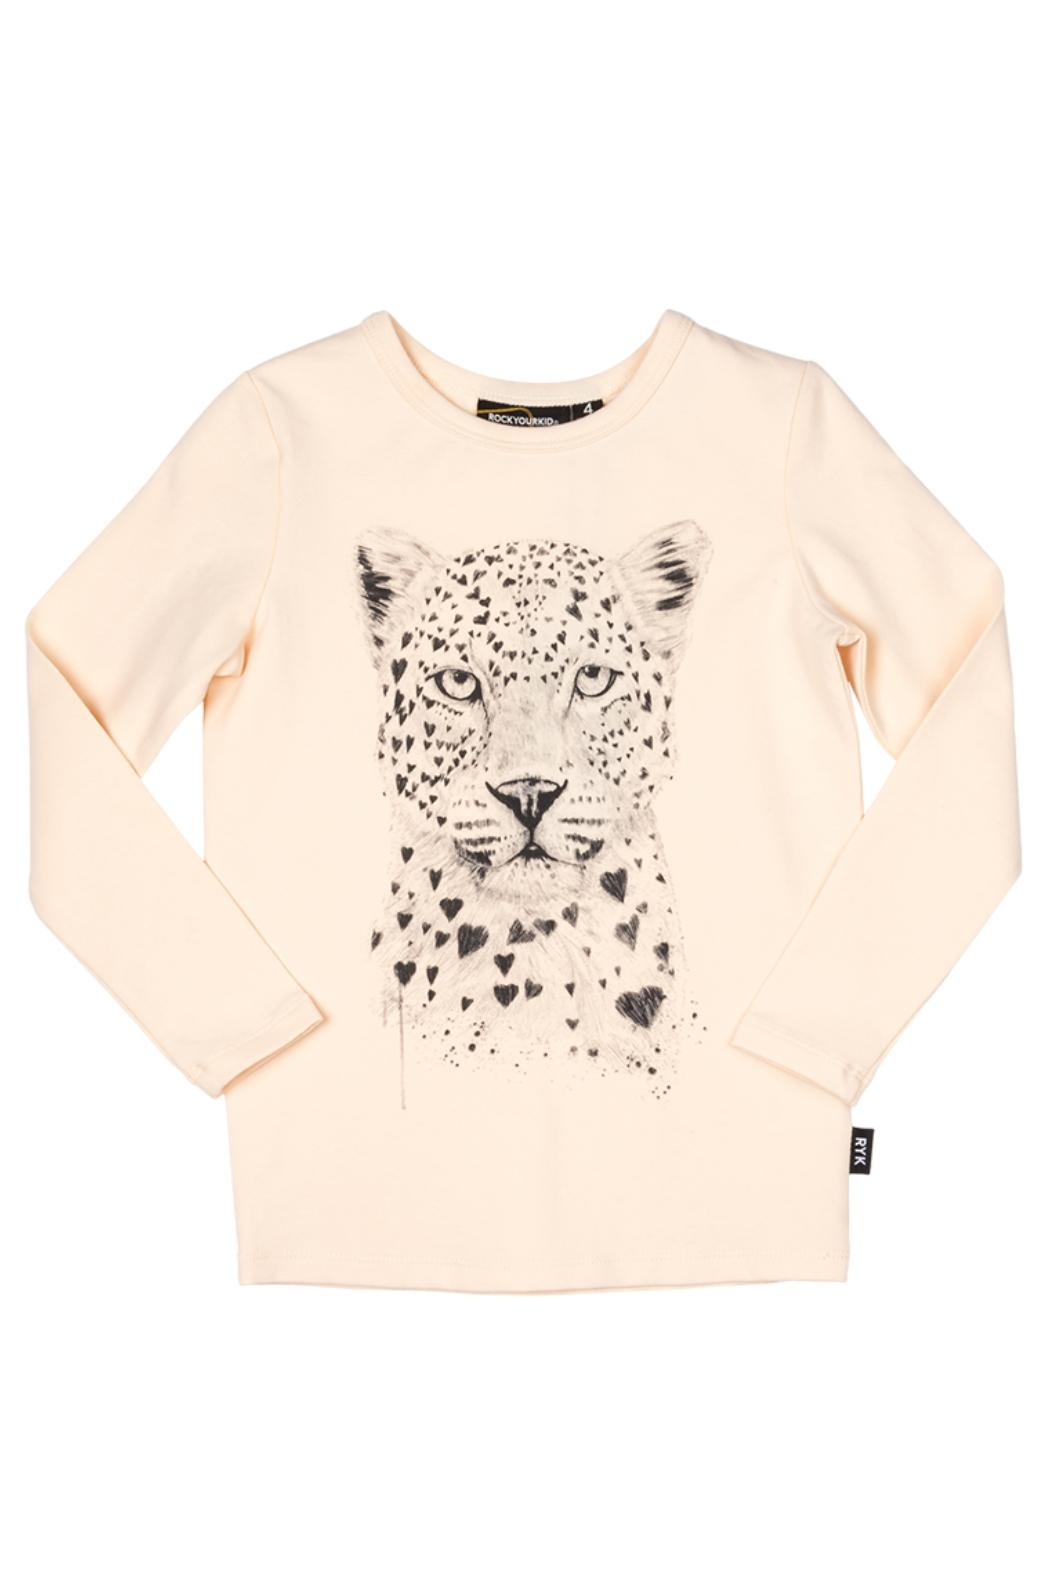 Rock Your Baby Leopard Love Top - Main Image